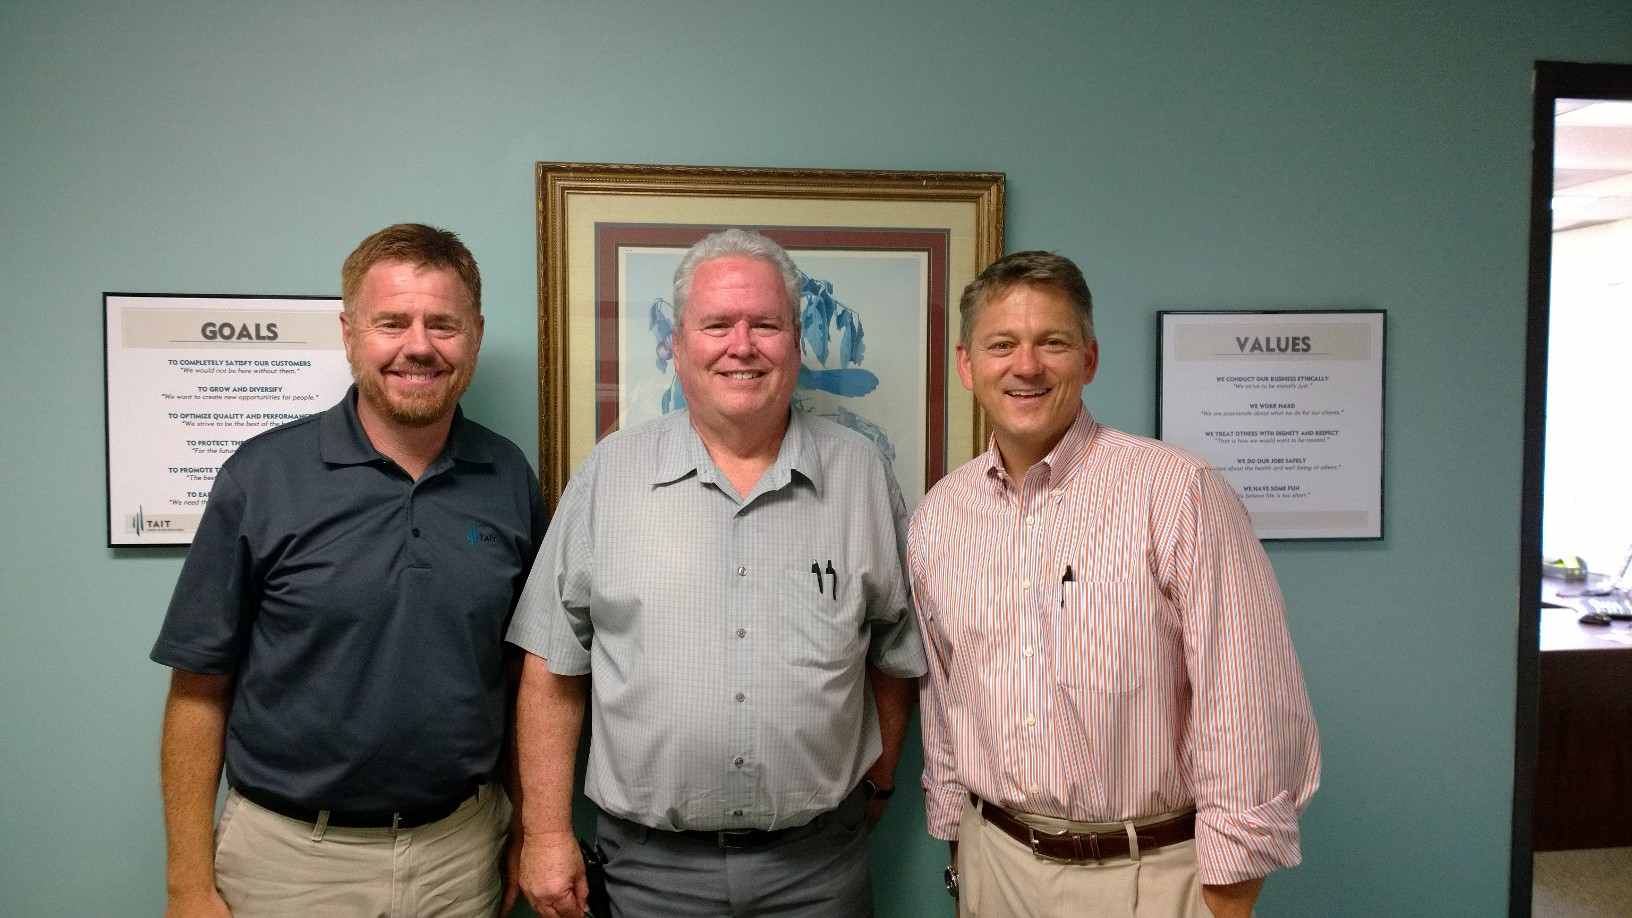 Andy Tait with Chuck Bentley and Tim Ericsen of Tait Environmental Services